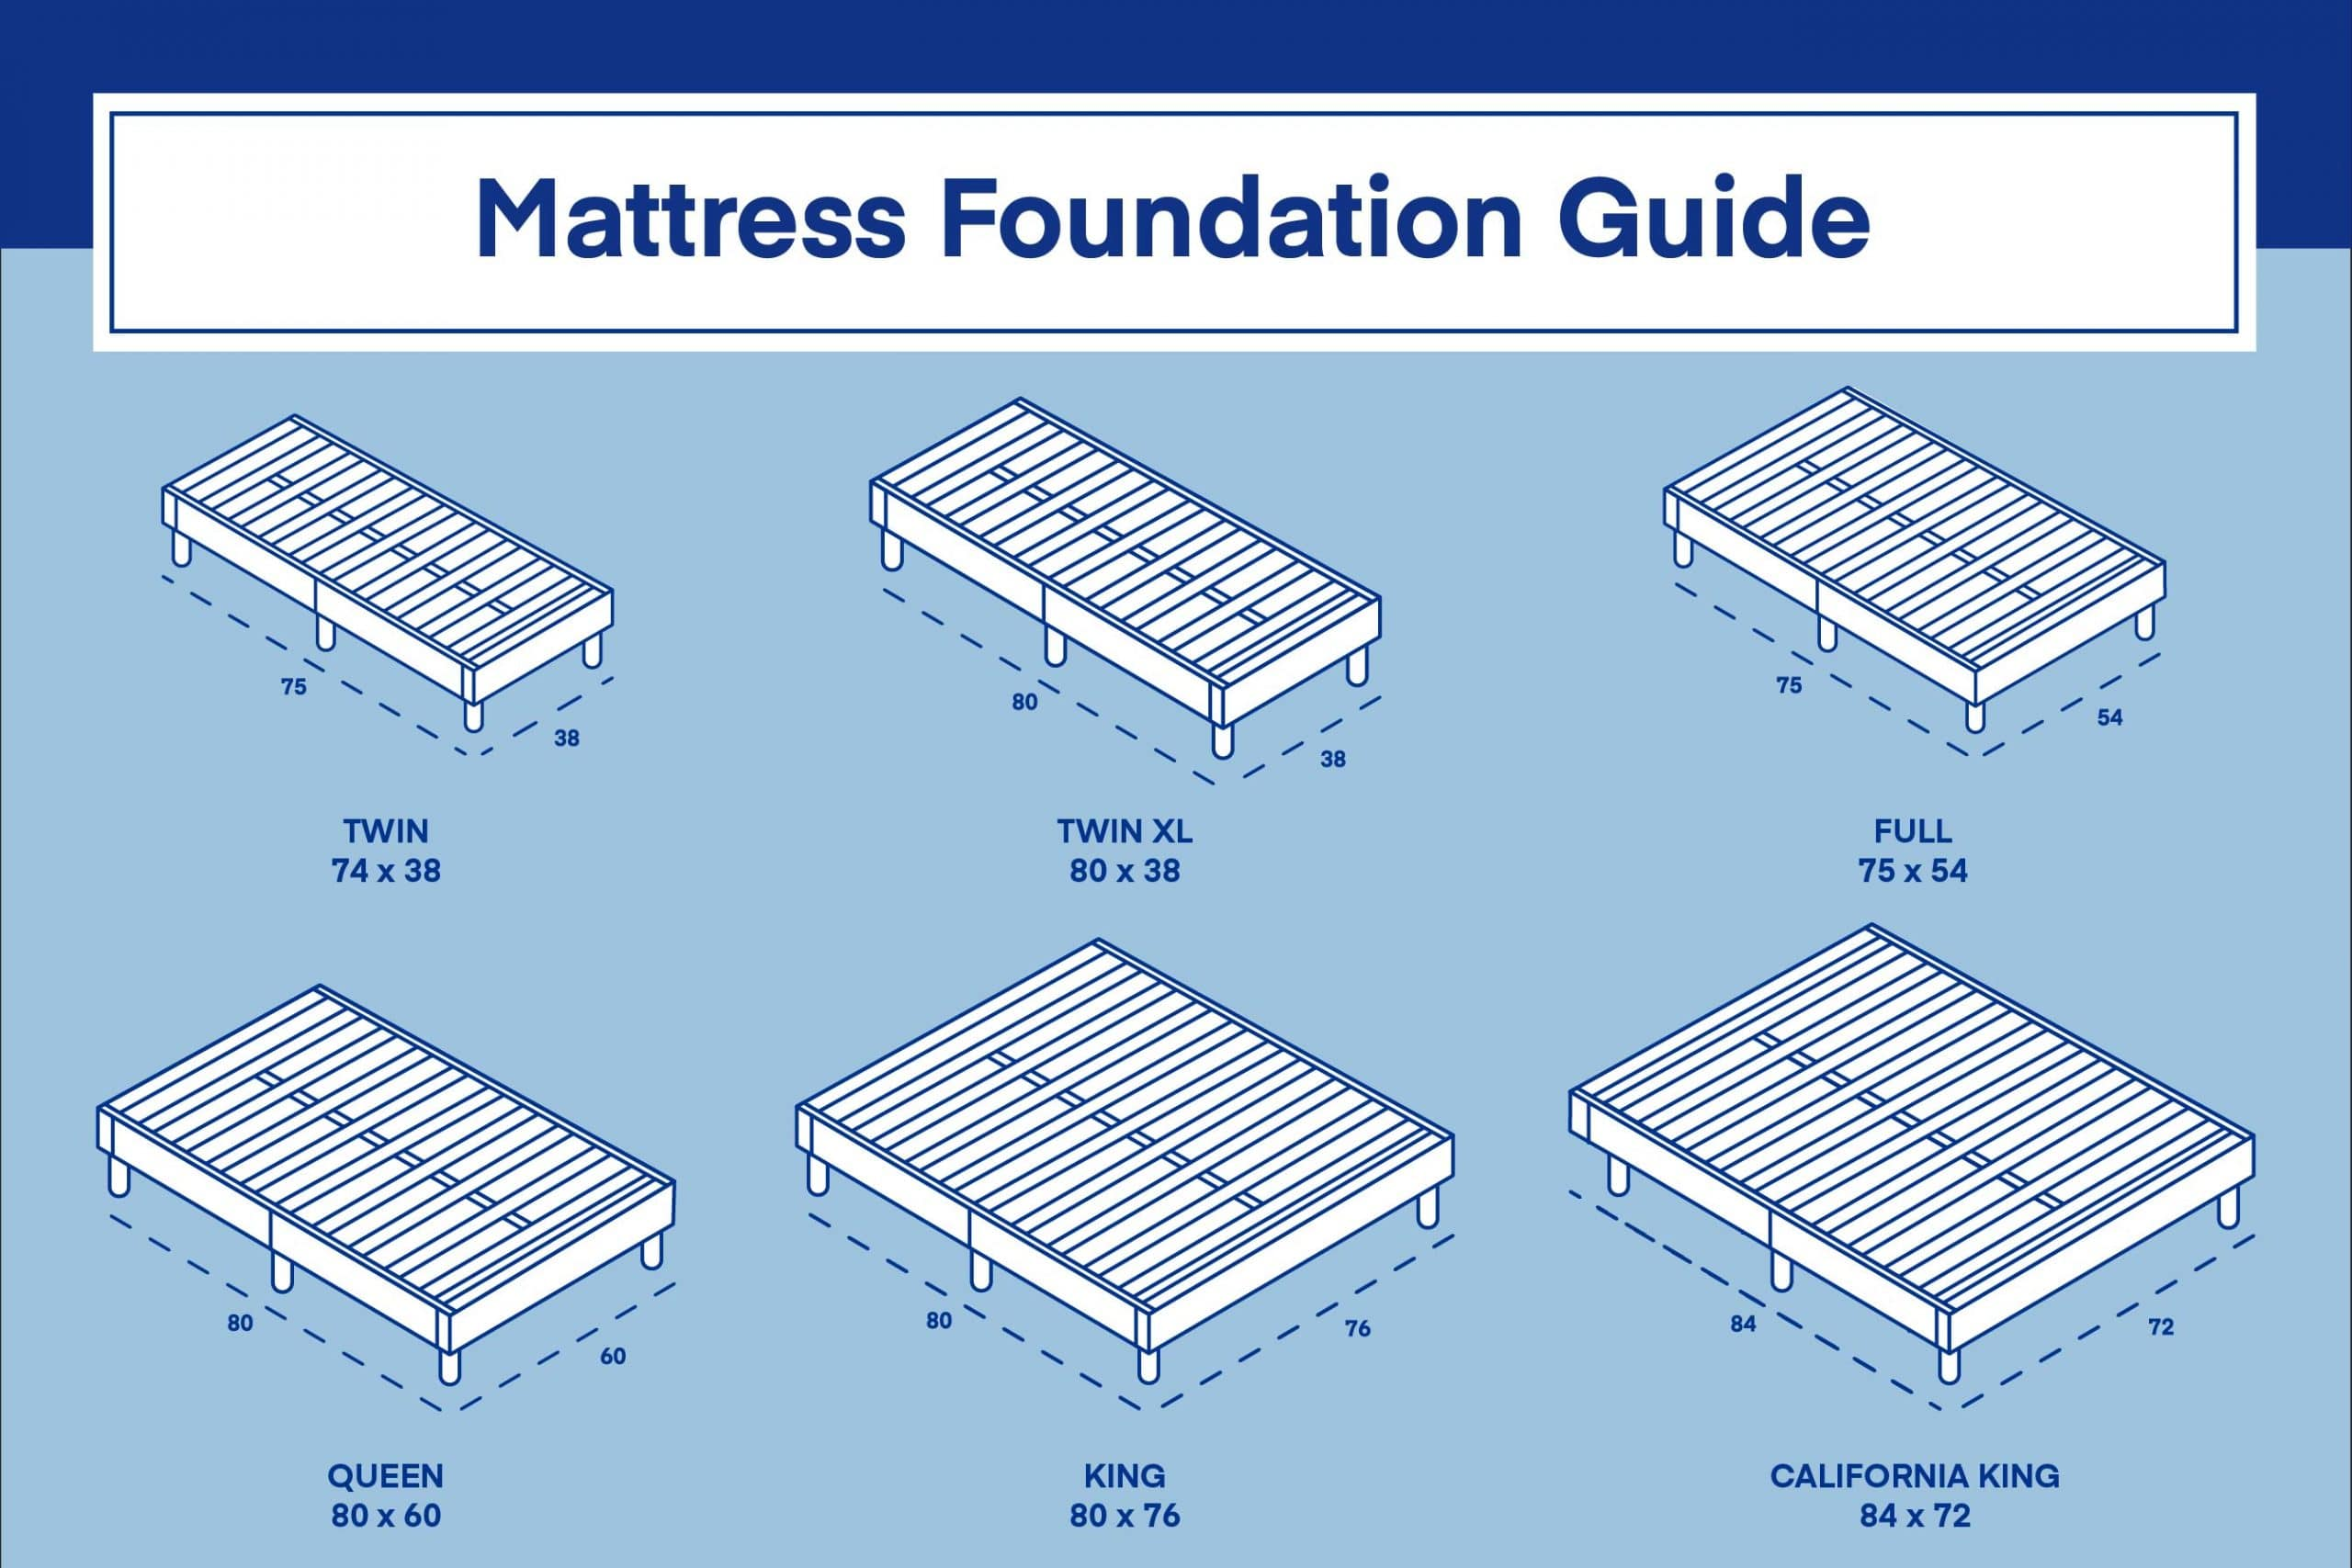 Mattress Foundation Sizes and Dimensions Guide